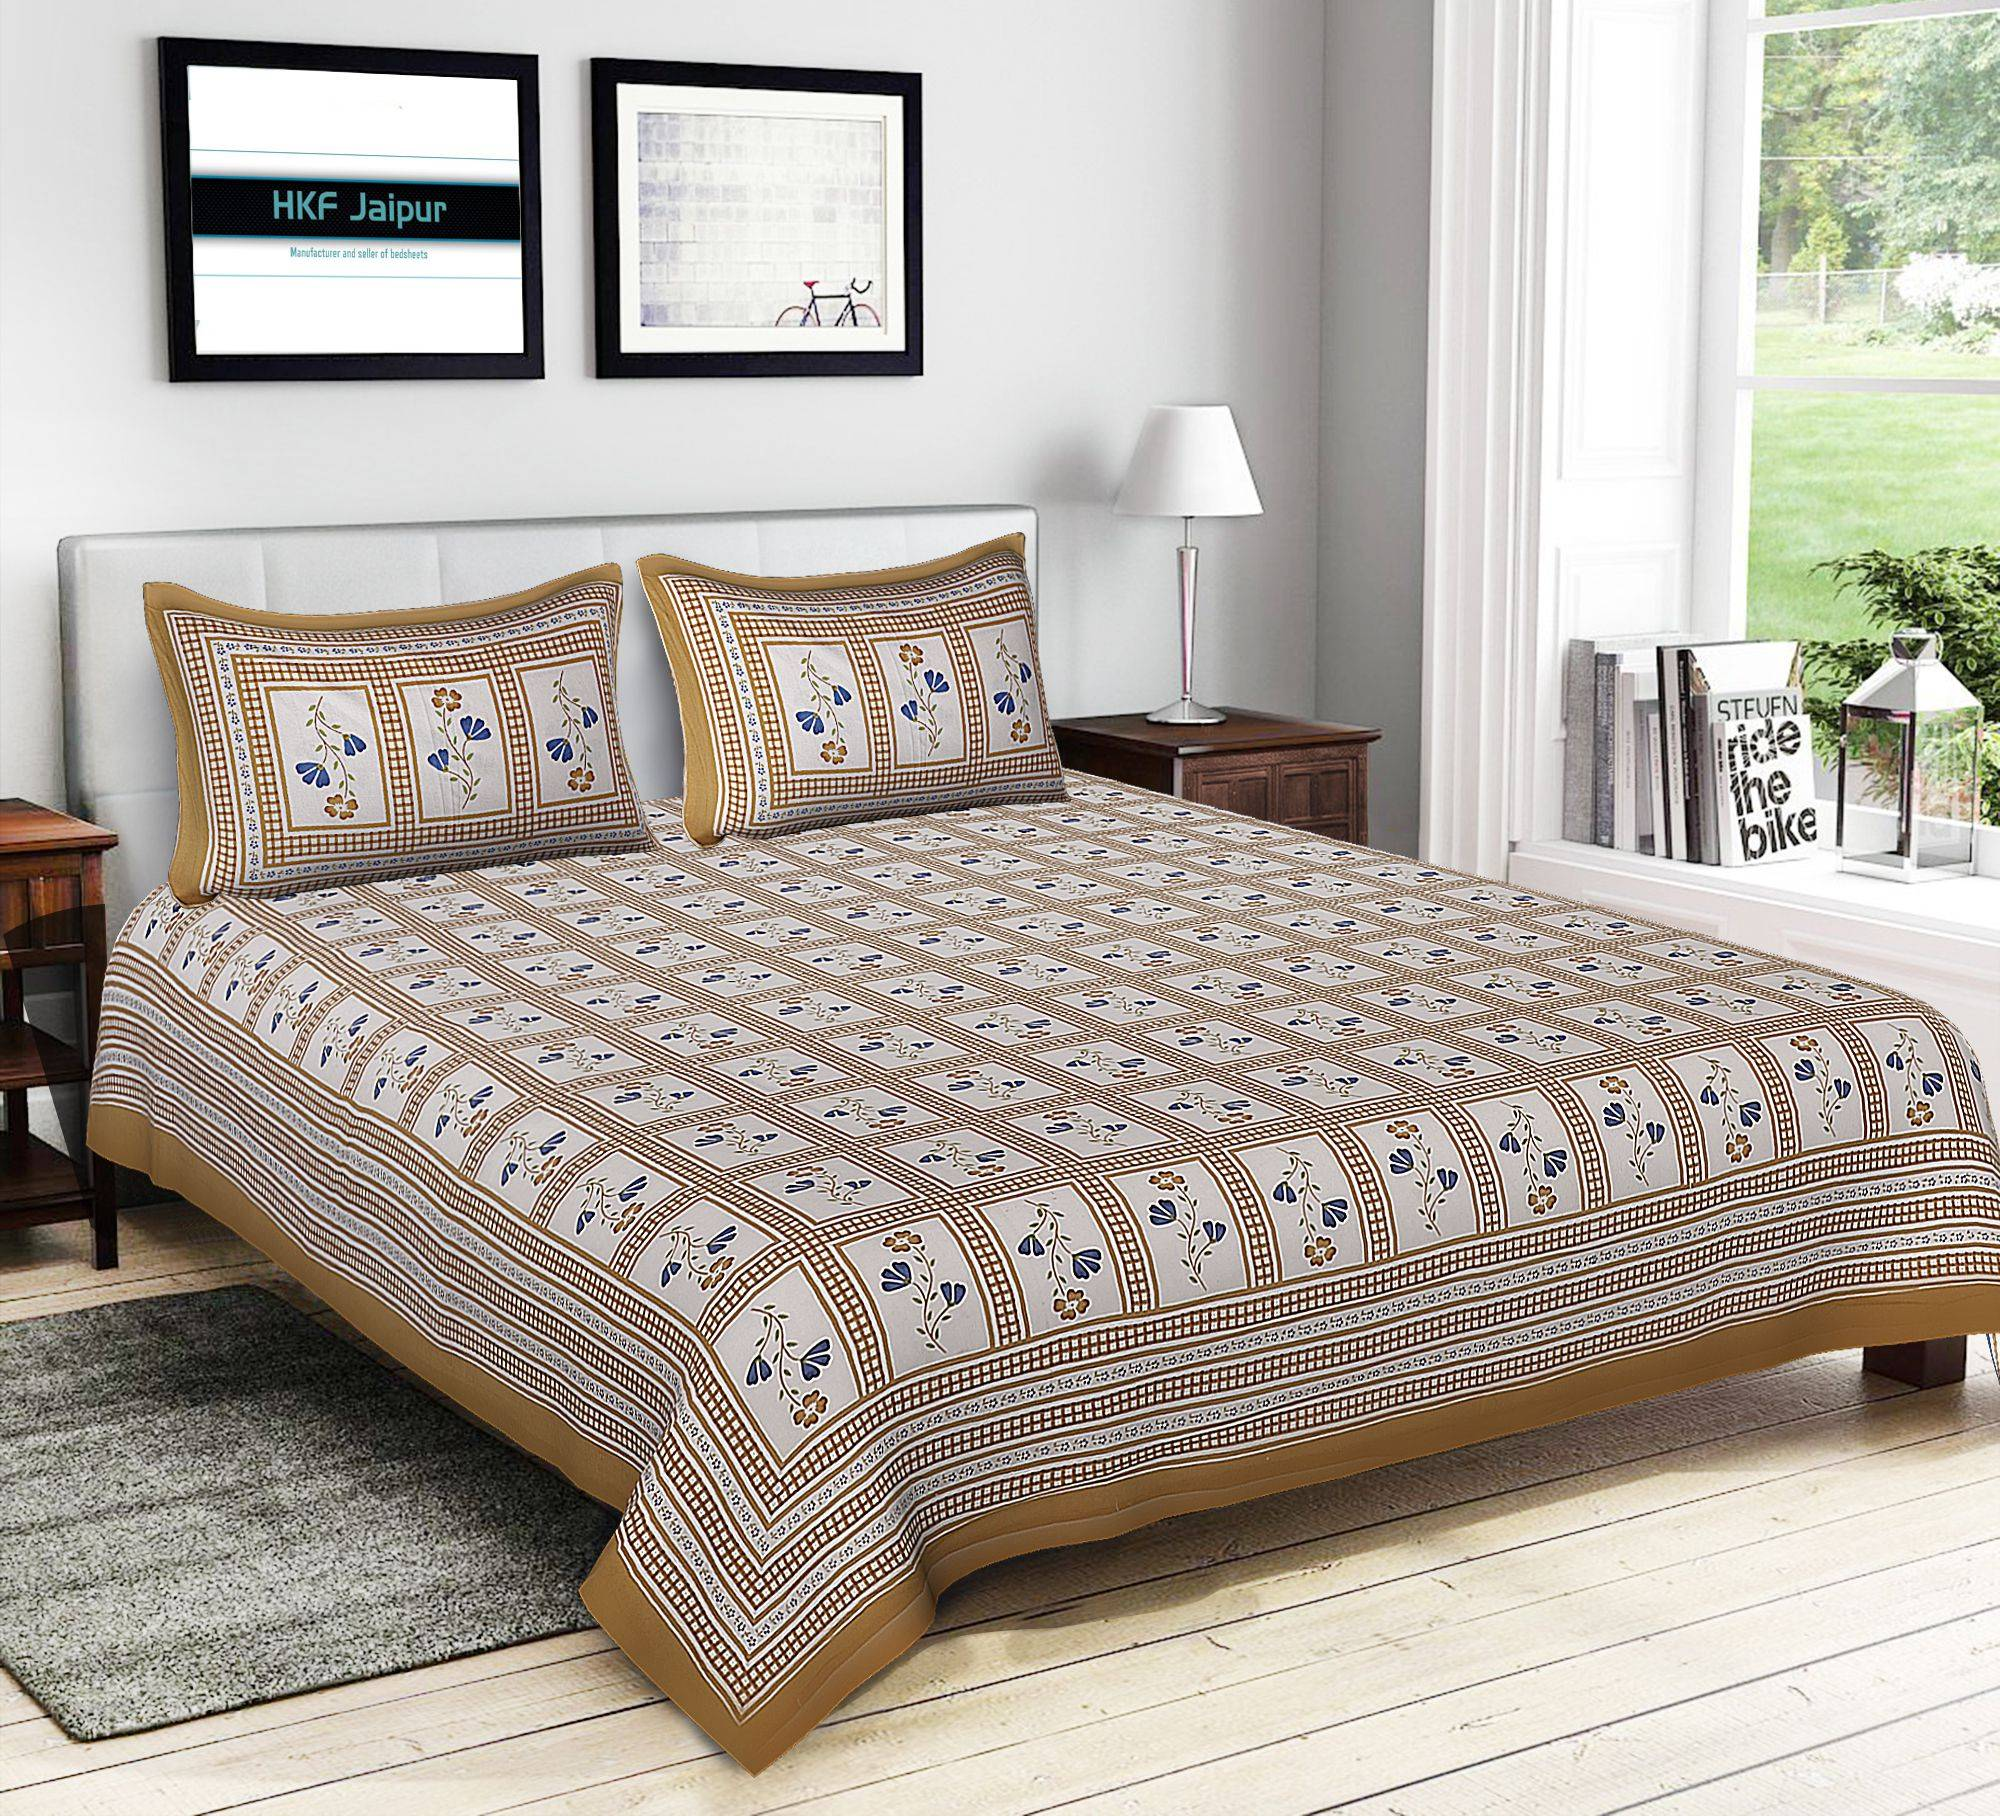 hkf Cotton King Size Bed SDL 1 053a8